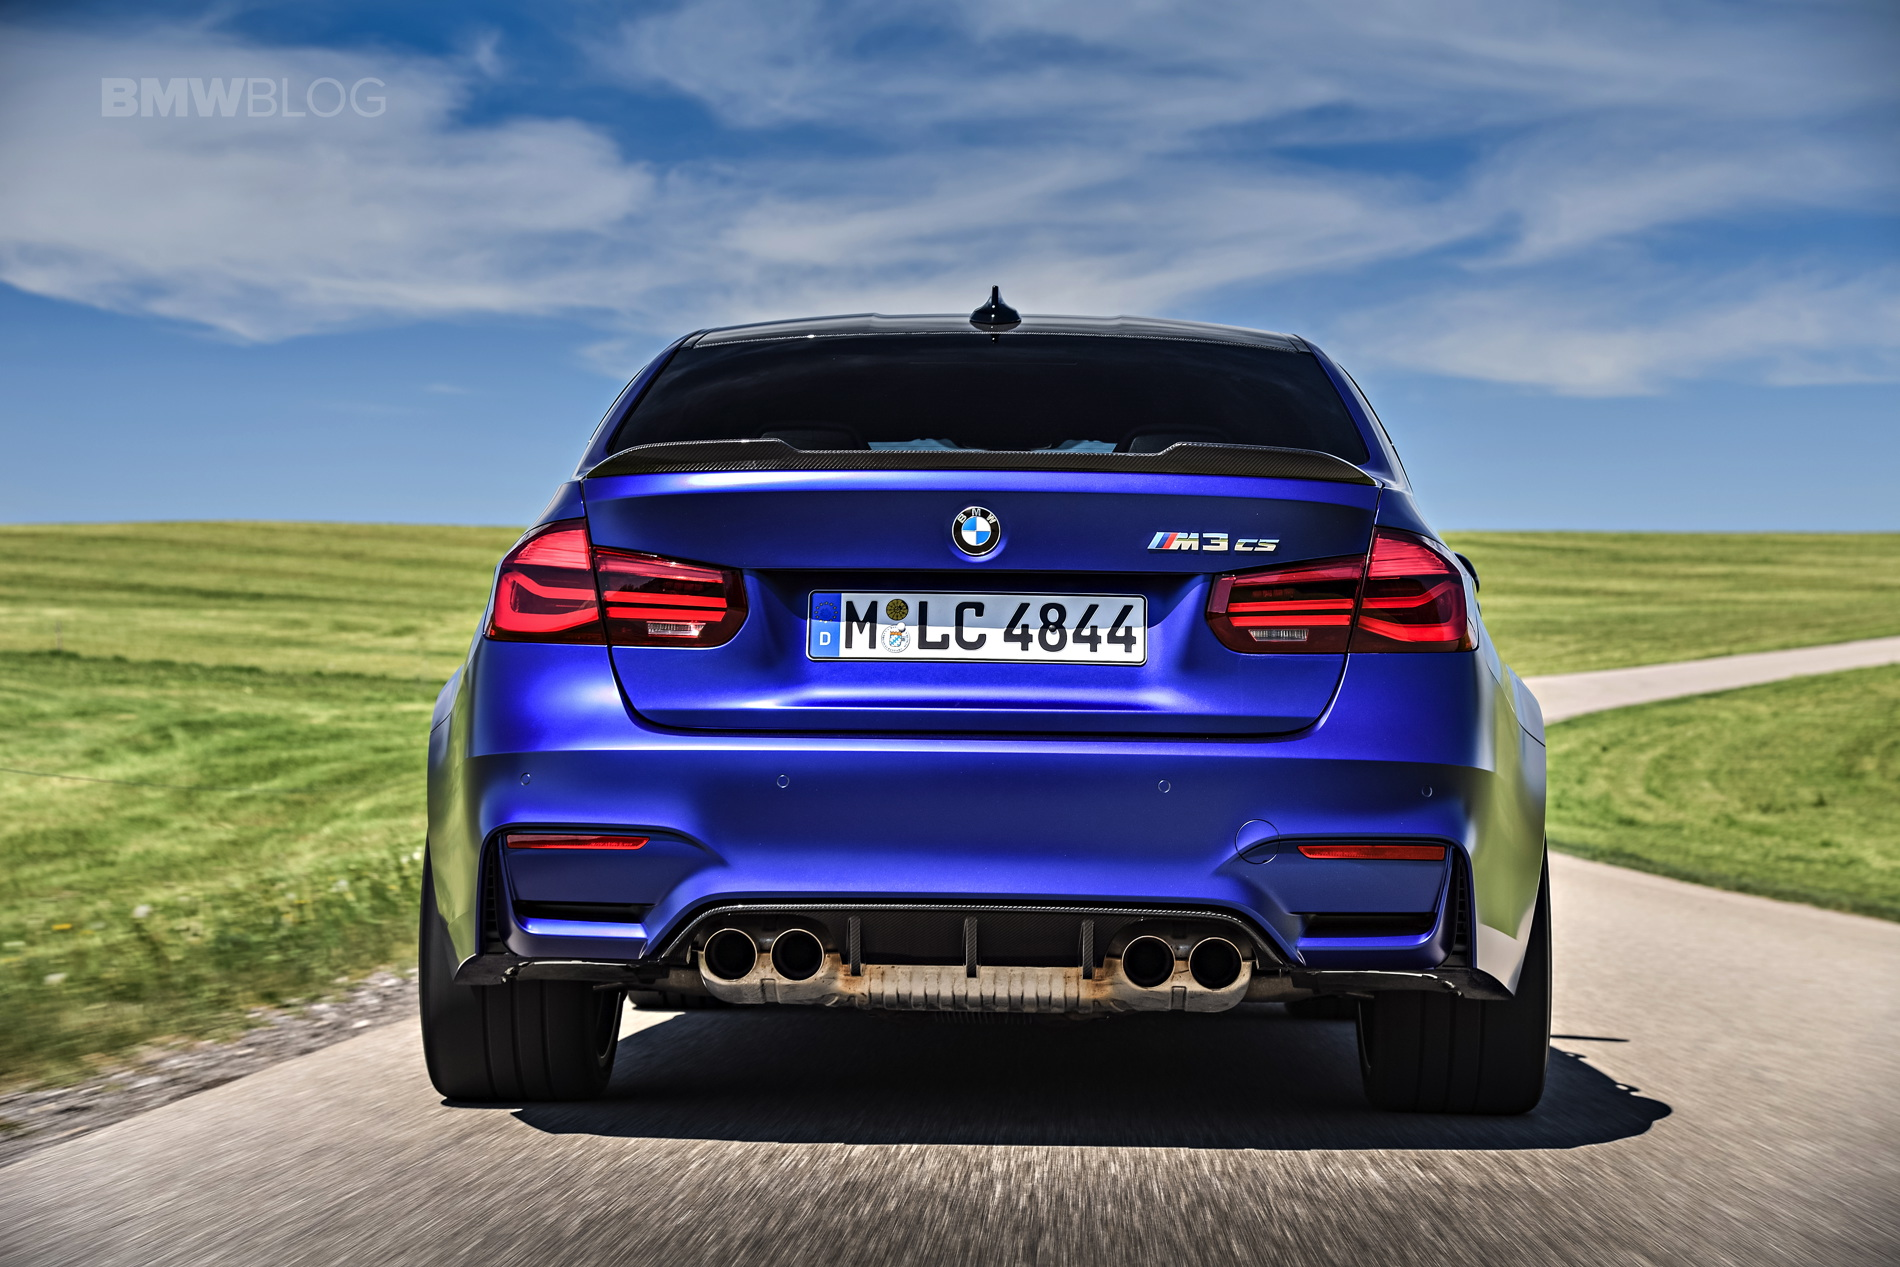 The Biggest Change For The Next Bmw M3 Needs To Be The Noise